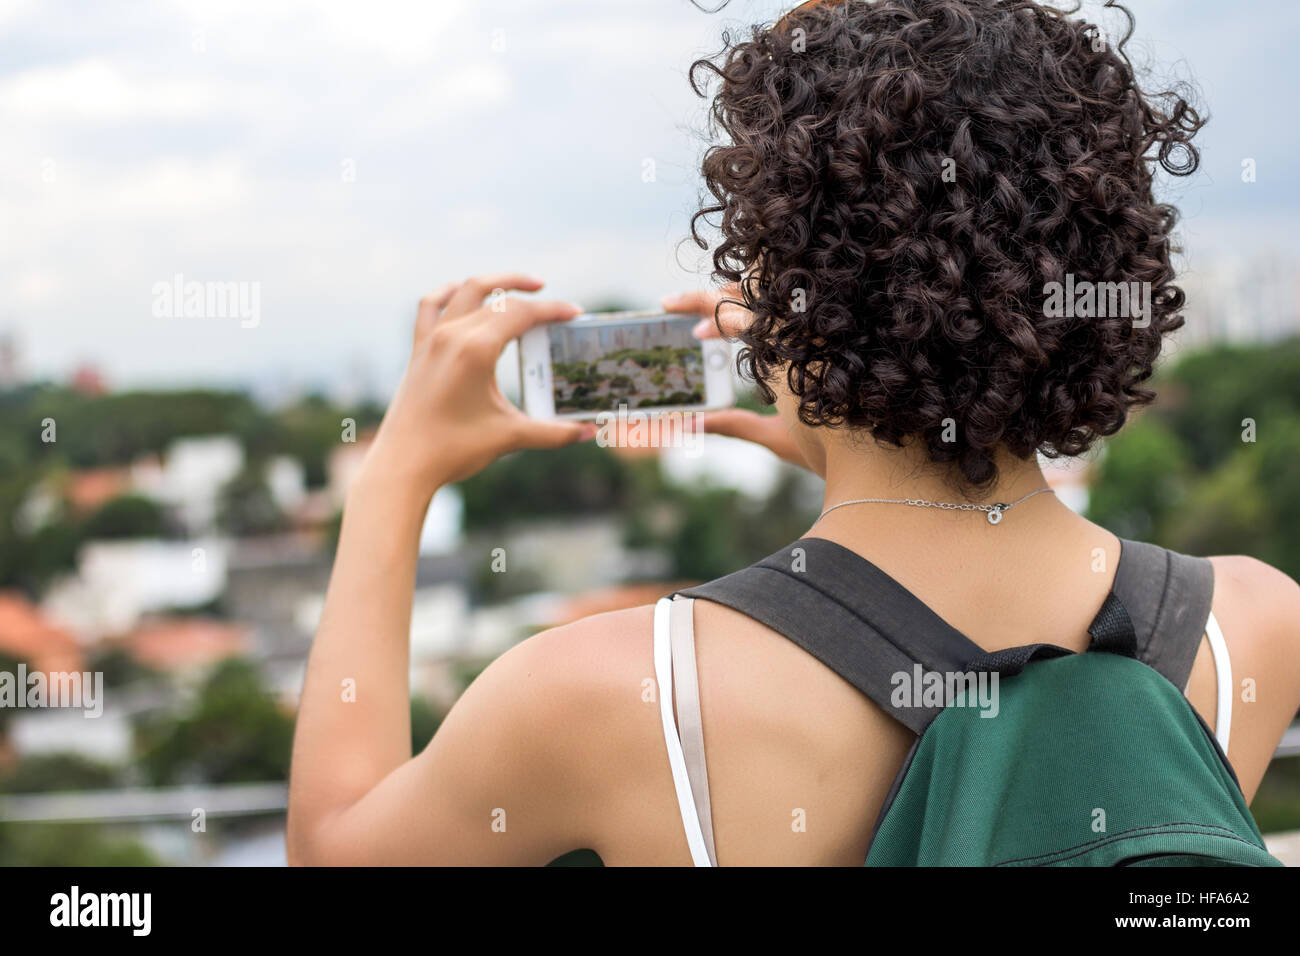 Girl with beautiful short curly hair taking pictures of a city. Using green backpack. Stock Photo